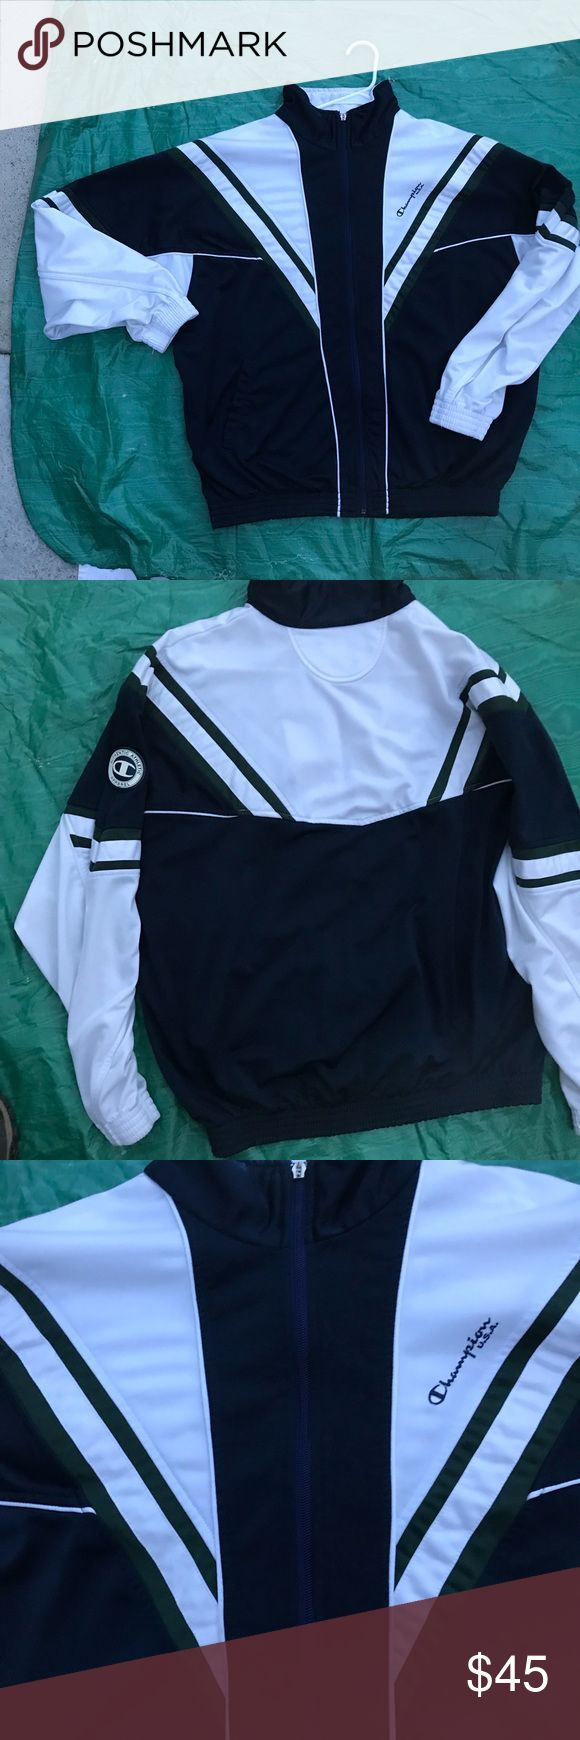 Vintage champion brand jacket xl 27' top of collar to bottom 26' pit to pit Champion Jackets & Coats